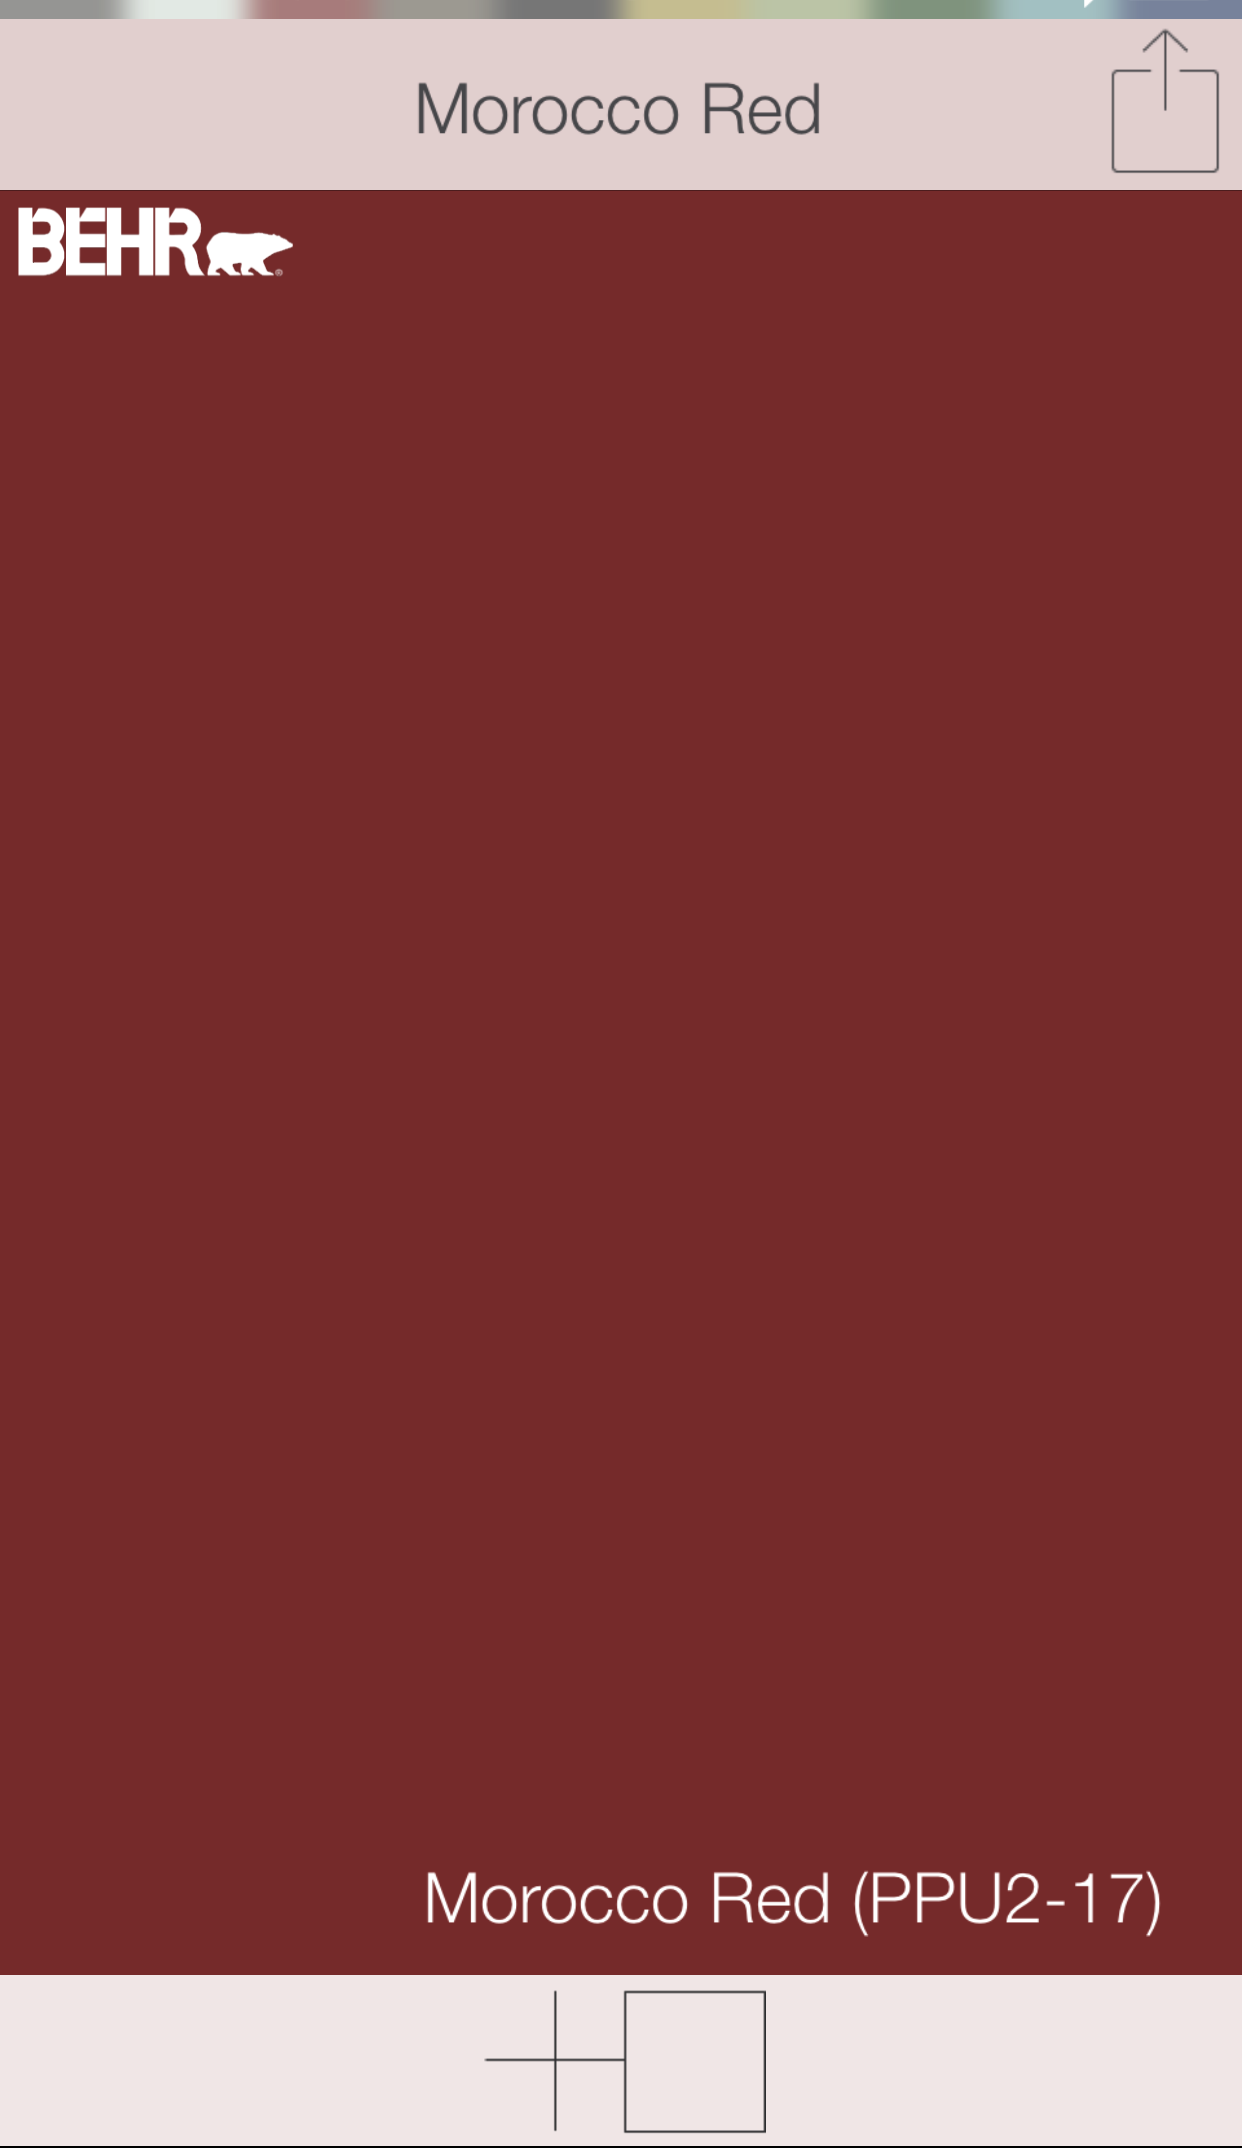 Red front door colors Morocco Red PPU2 17 Behr paints